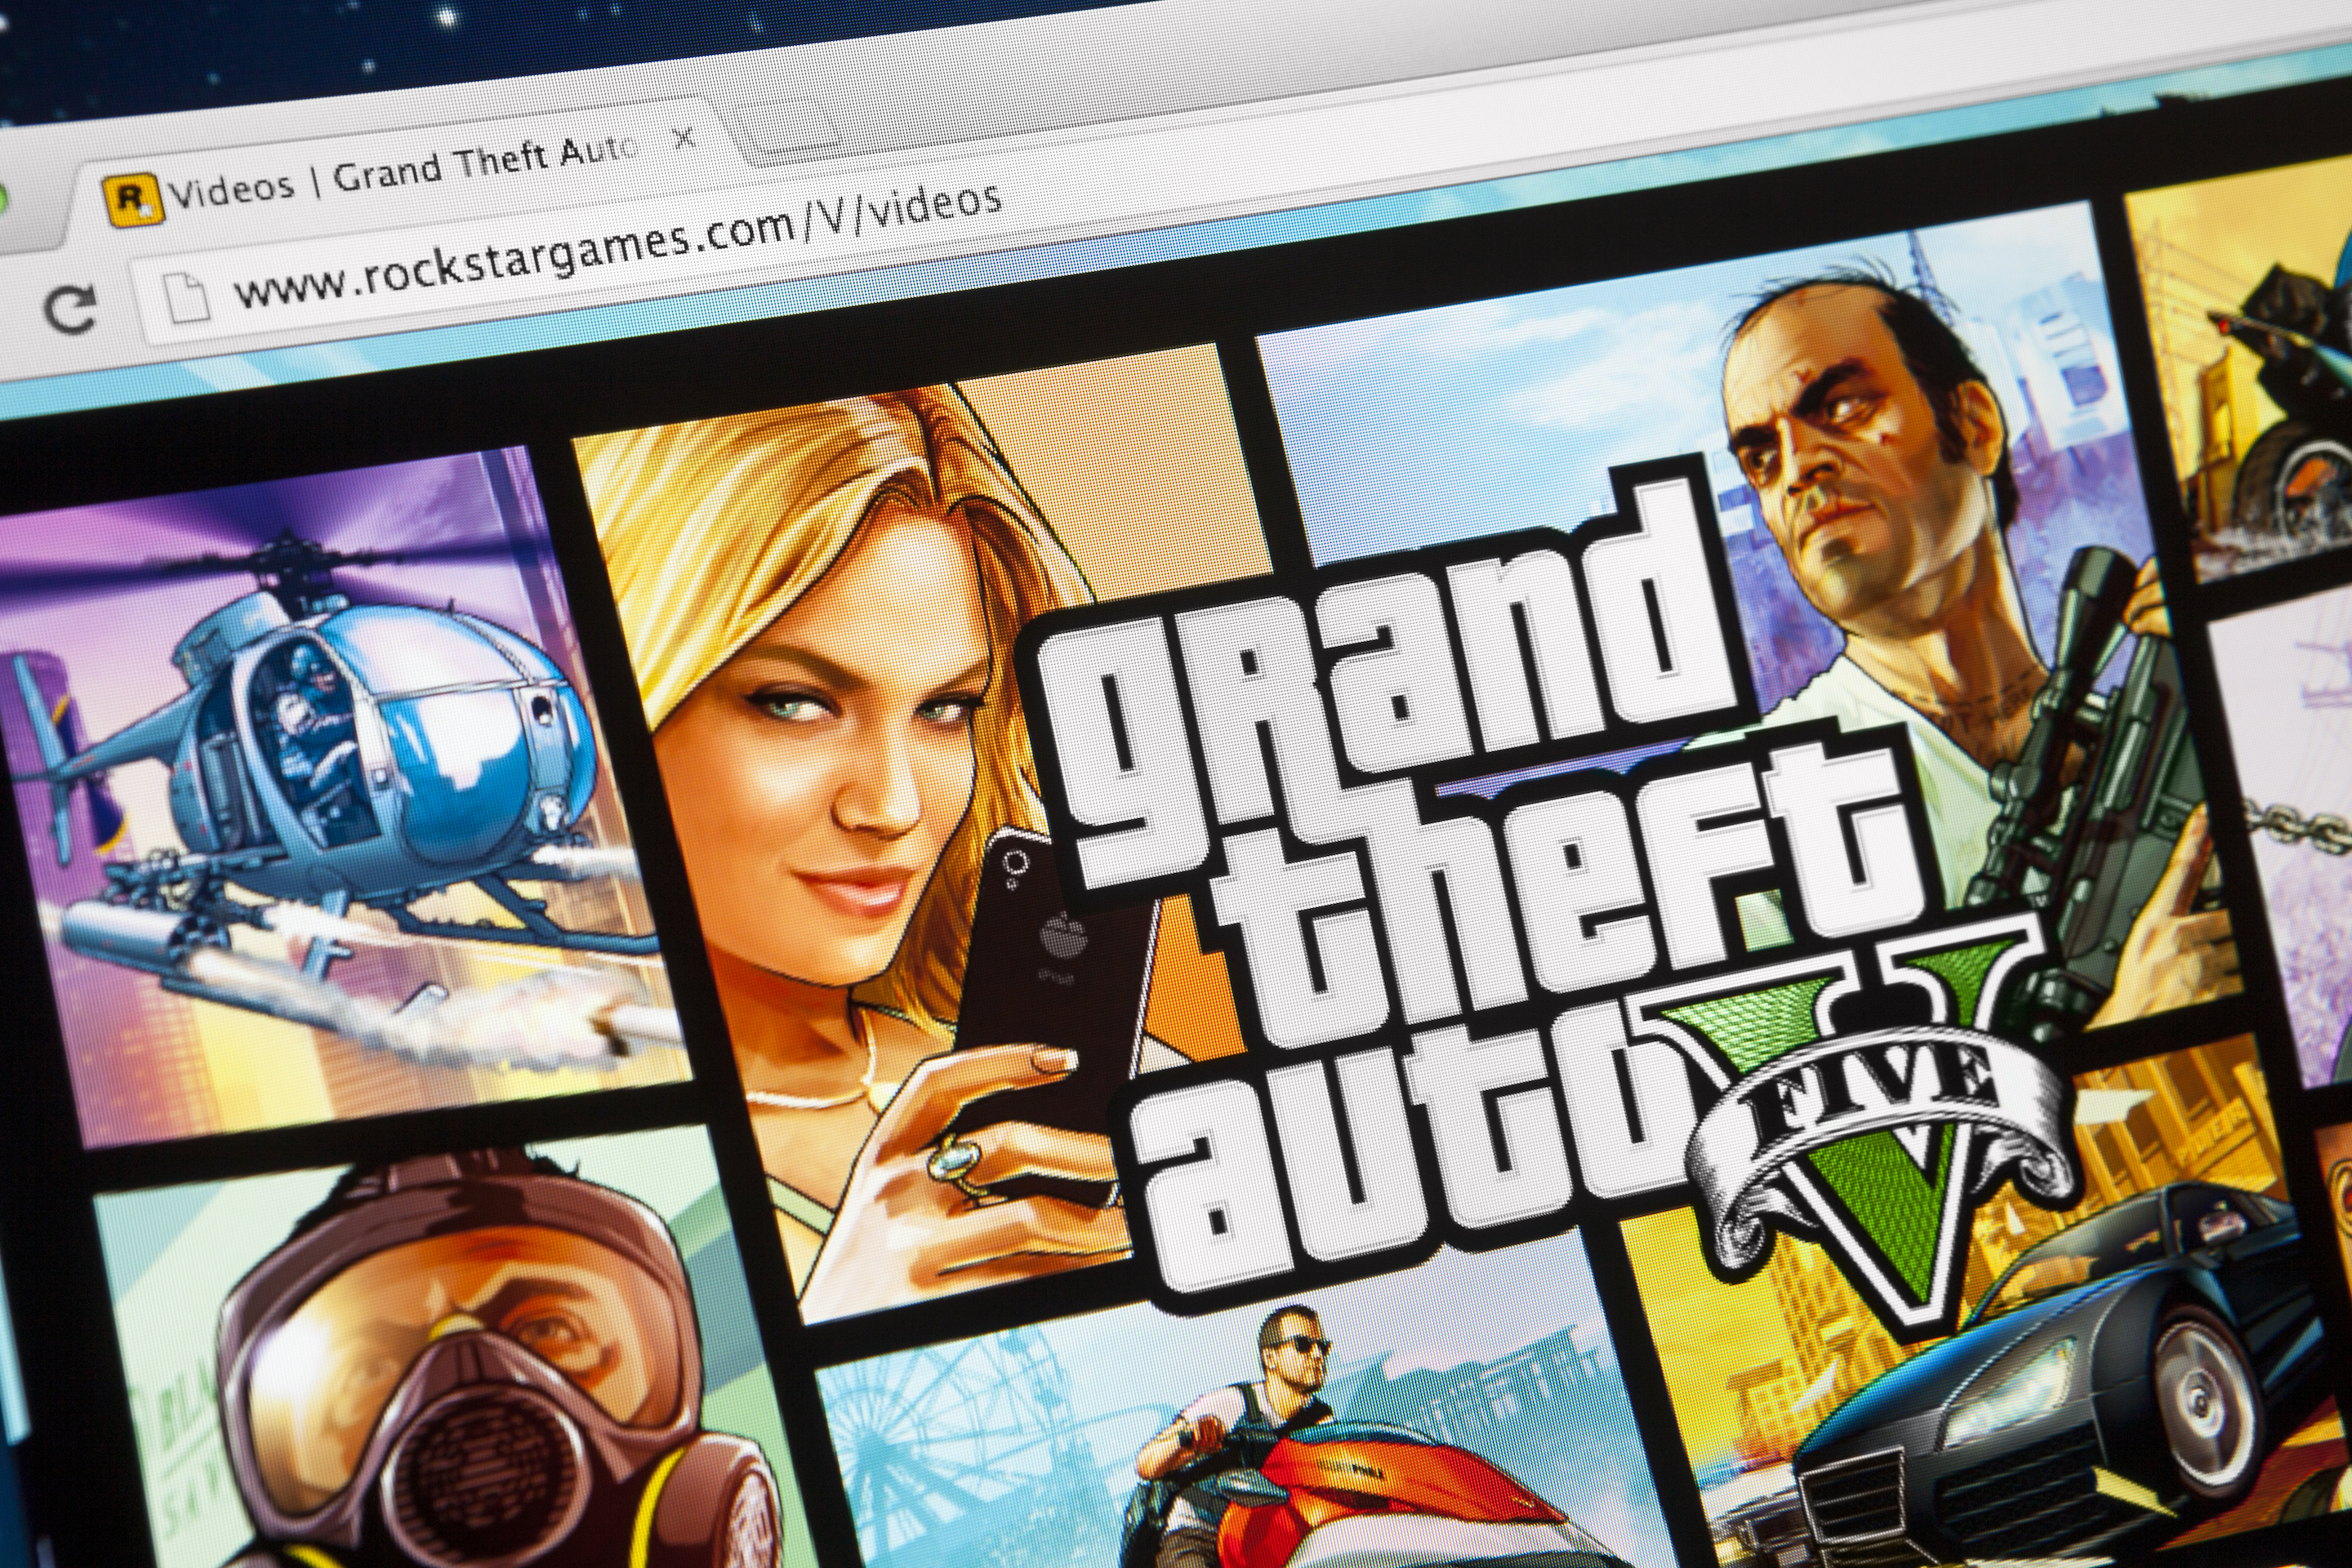 Grand Theft Auto 5 on iMac screen